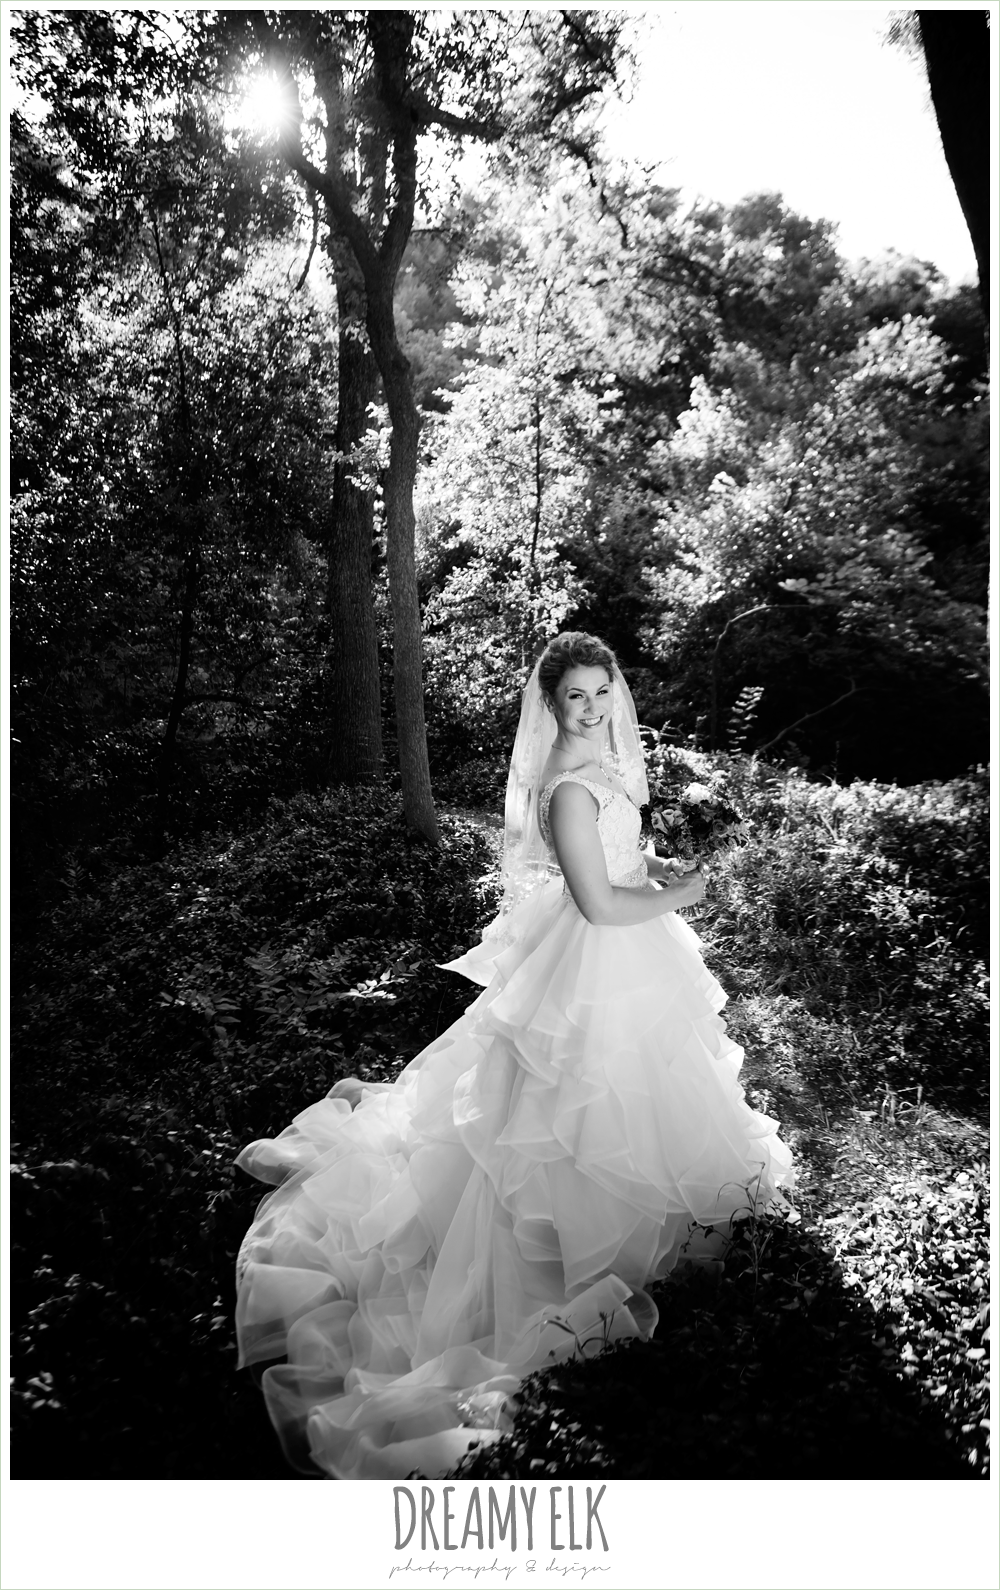 outdoor summer bridal photo in the woods, lace bodice wedding dress with ruffles, blush wedding dress, curly hair updo, lace wedding veil, pink wedding bouquet, dallas, texas, austin wedding photographer {dreamy elk photography and design}